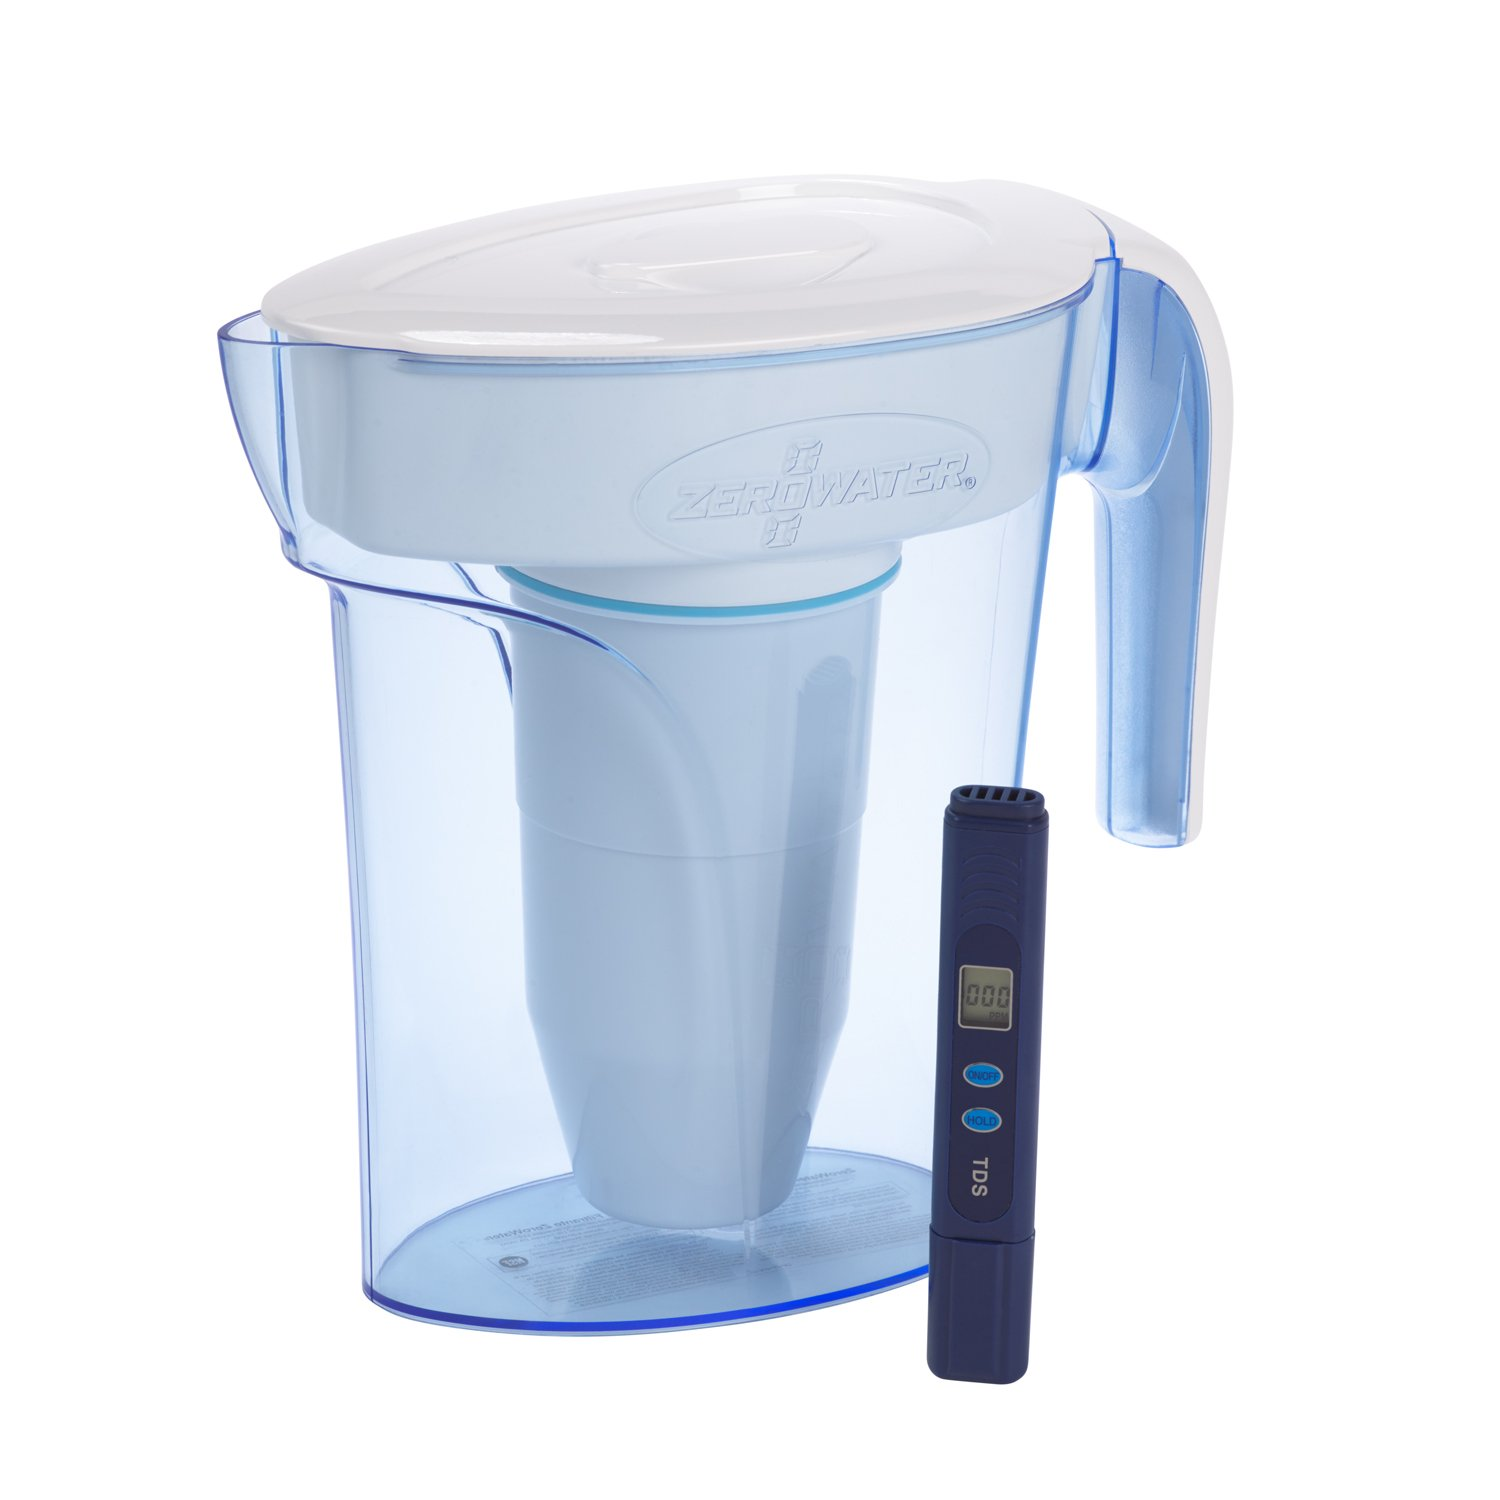 ZeroWater 6 Cup Pitcher with Free Water Quality Meter BPA-Free NSF Certified to Reduce Lead and Other Heavy Metals ZP-006-4